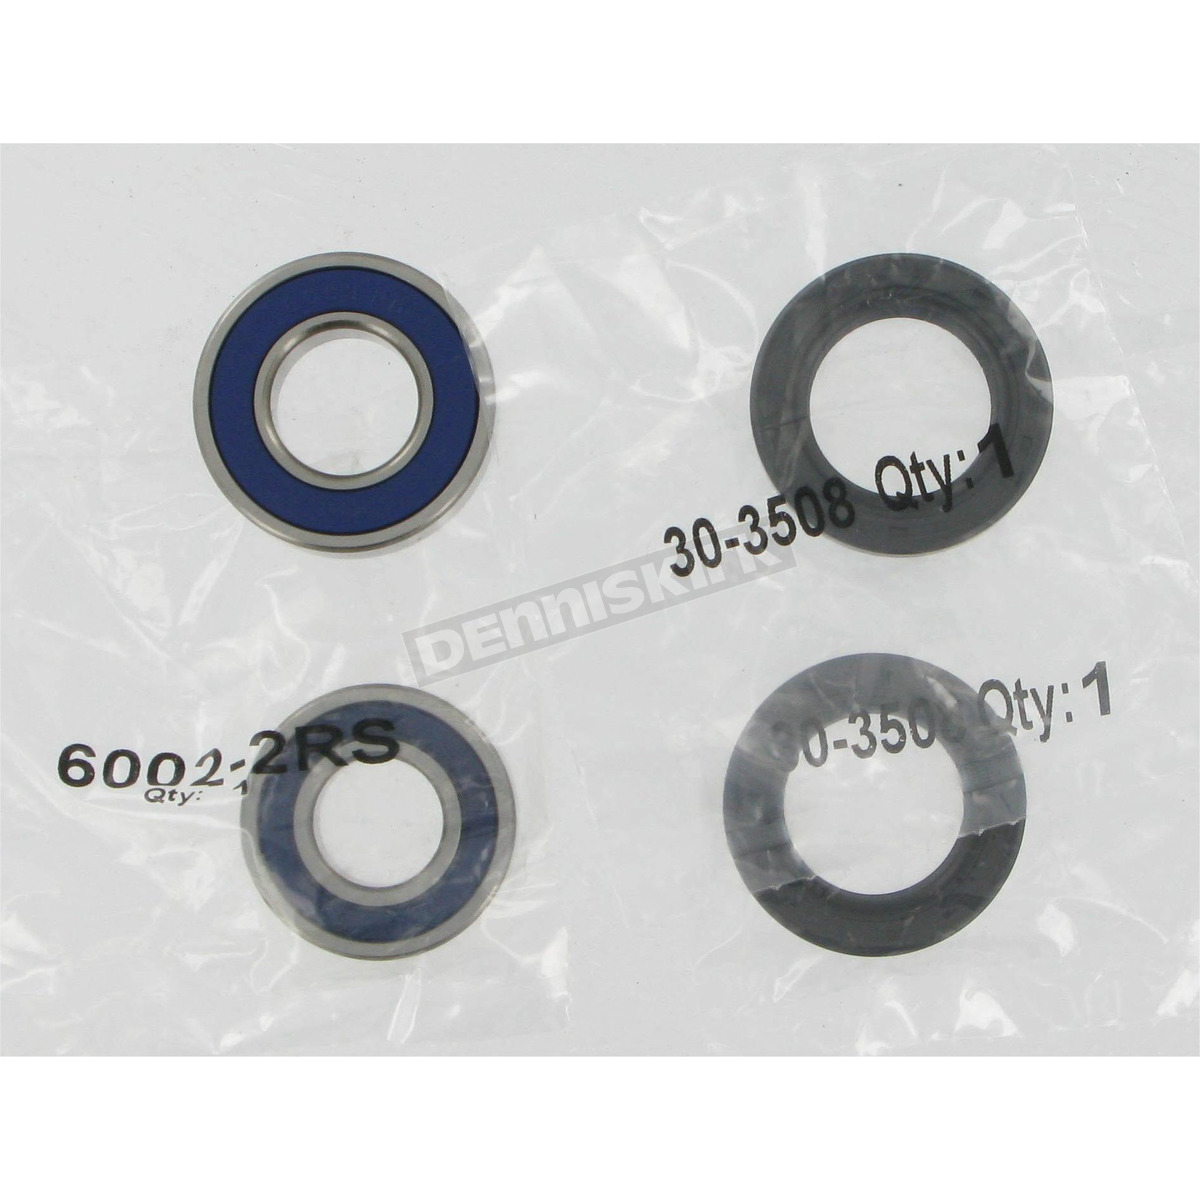 Bombardier DS 90 2X4 2003-2005 ATV Front Wheel Bearing and Seal Kit 25-1395